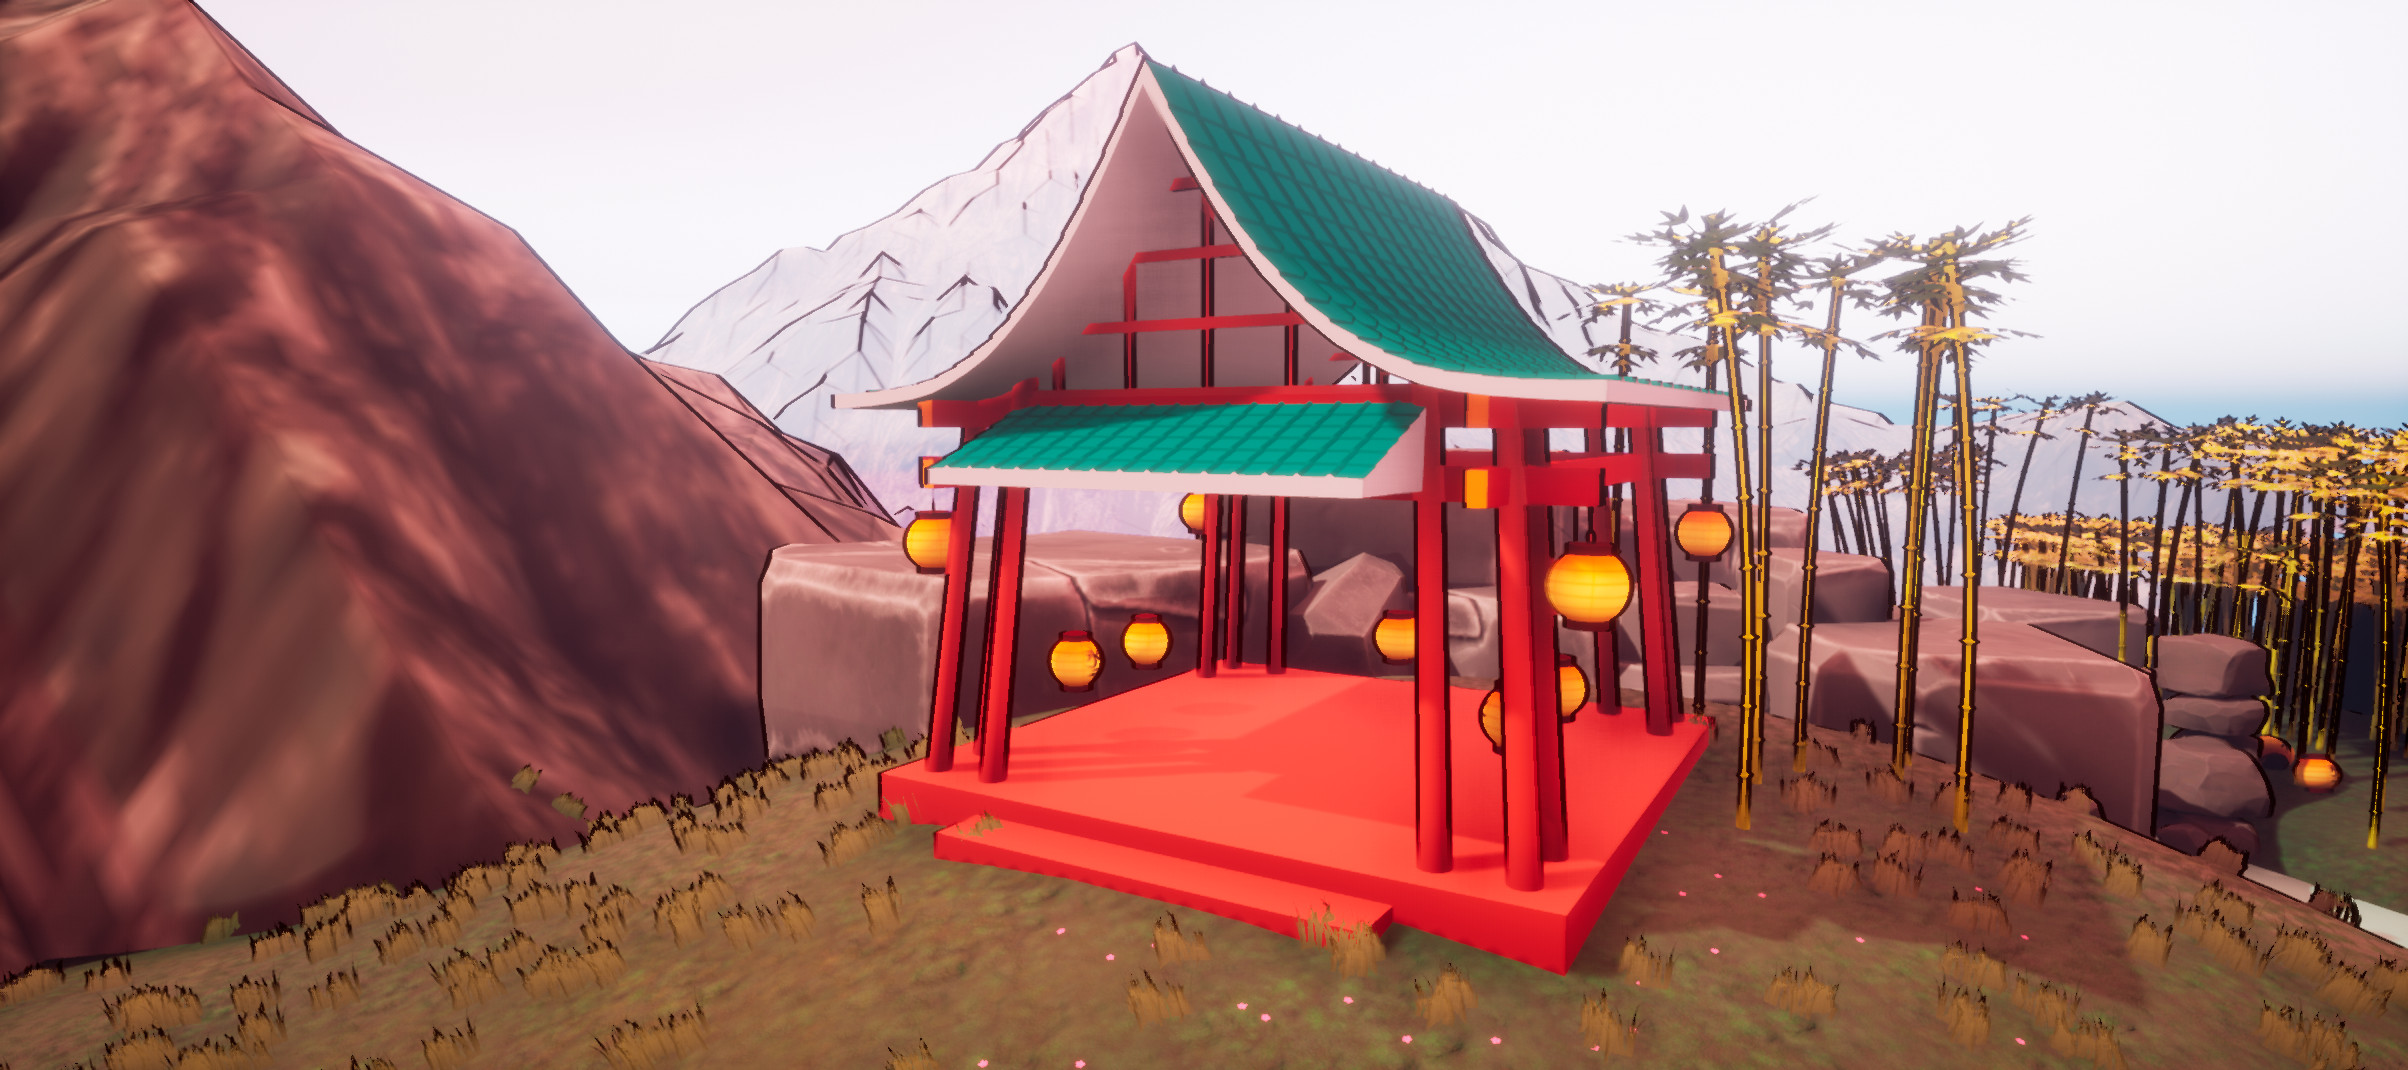 The temple with all of the lanterns returned.